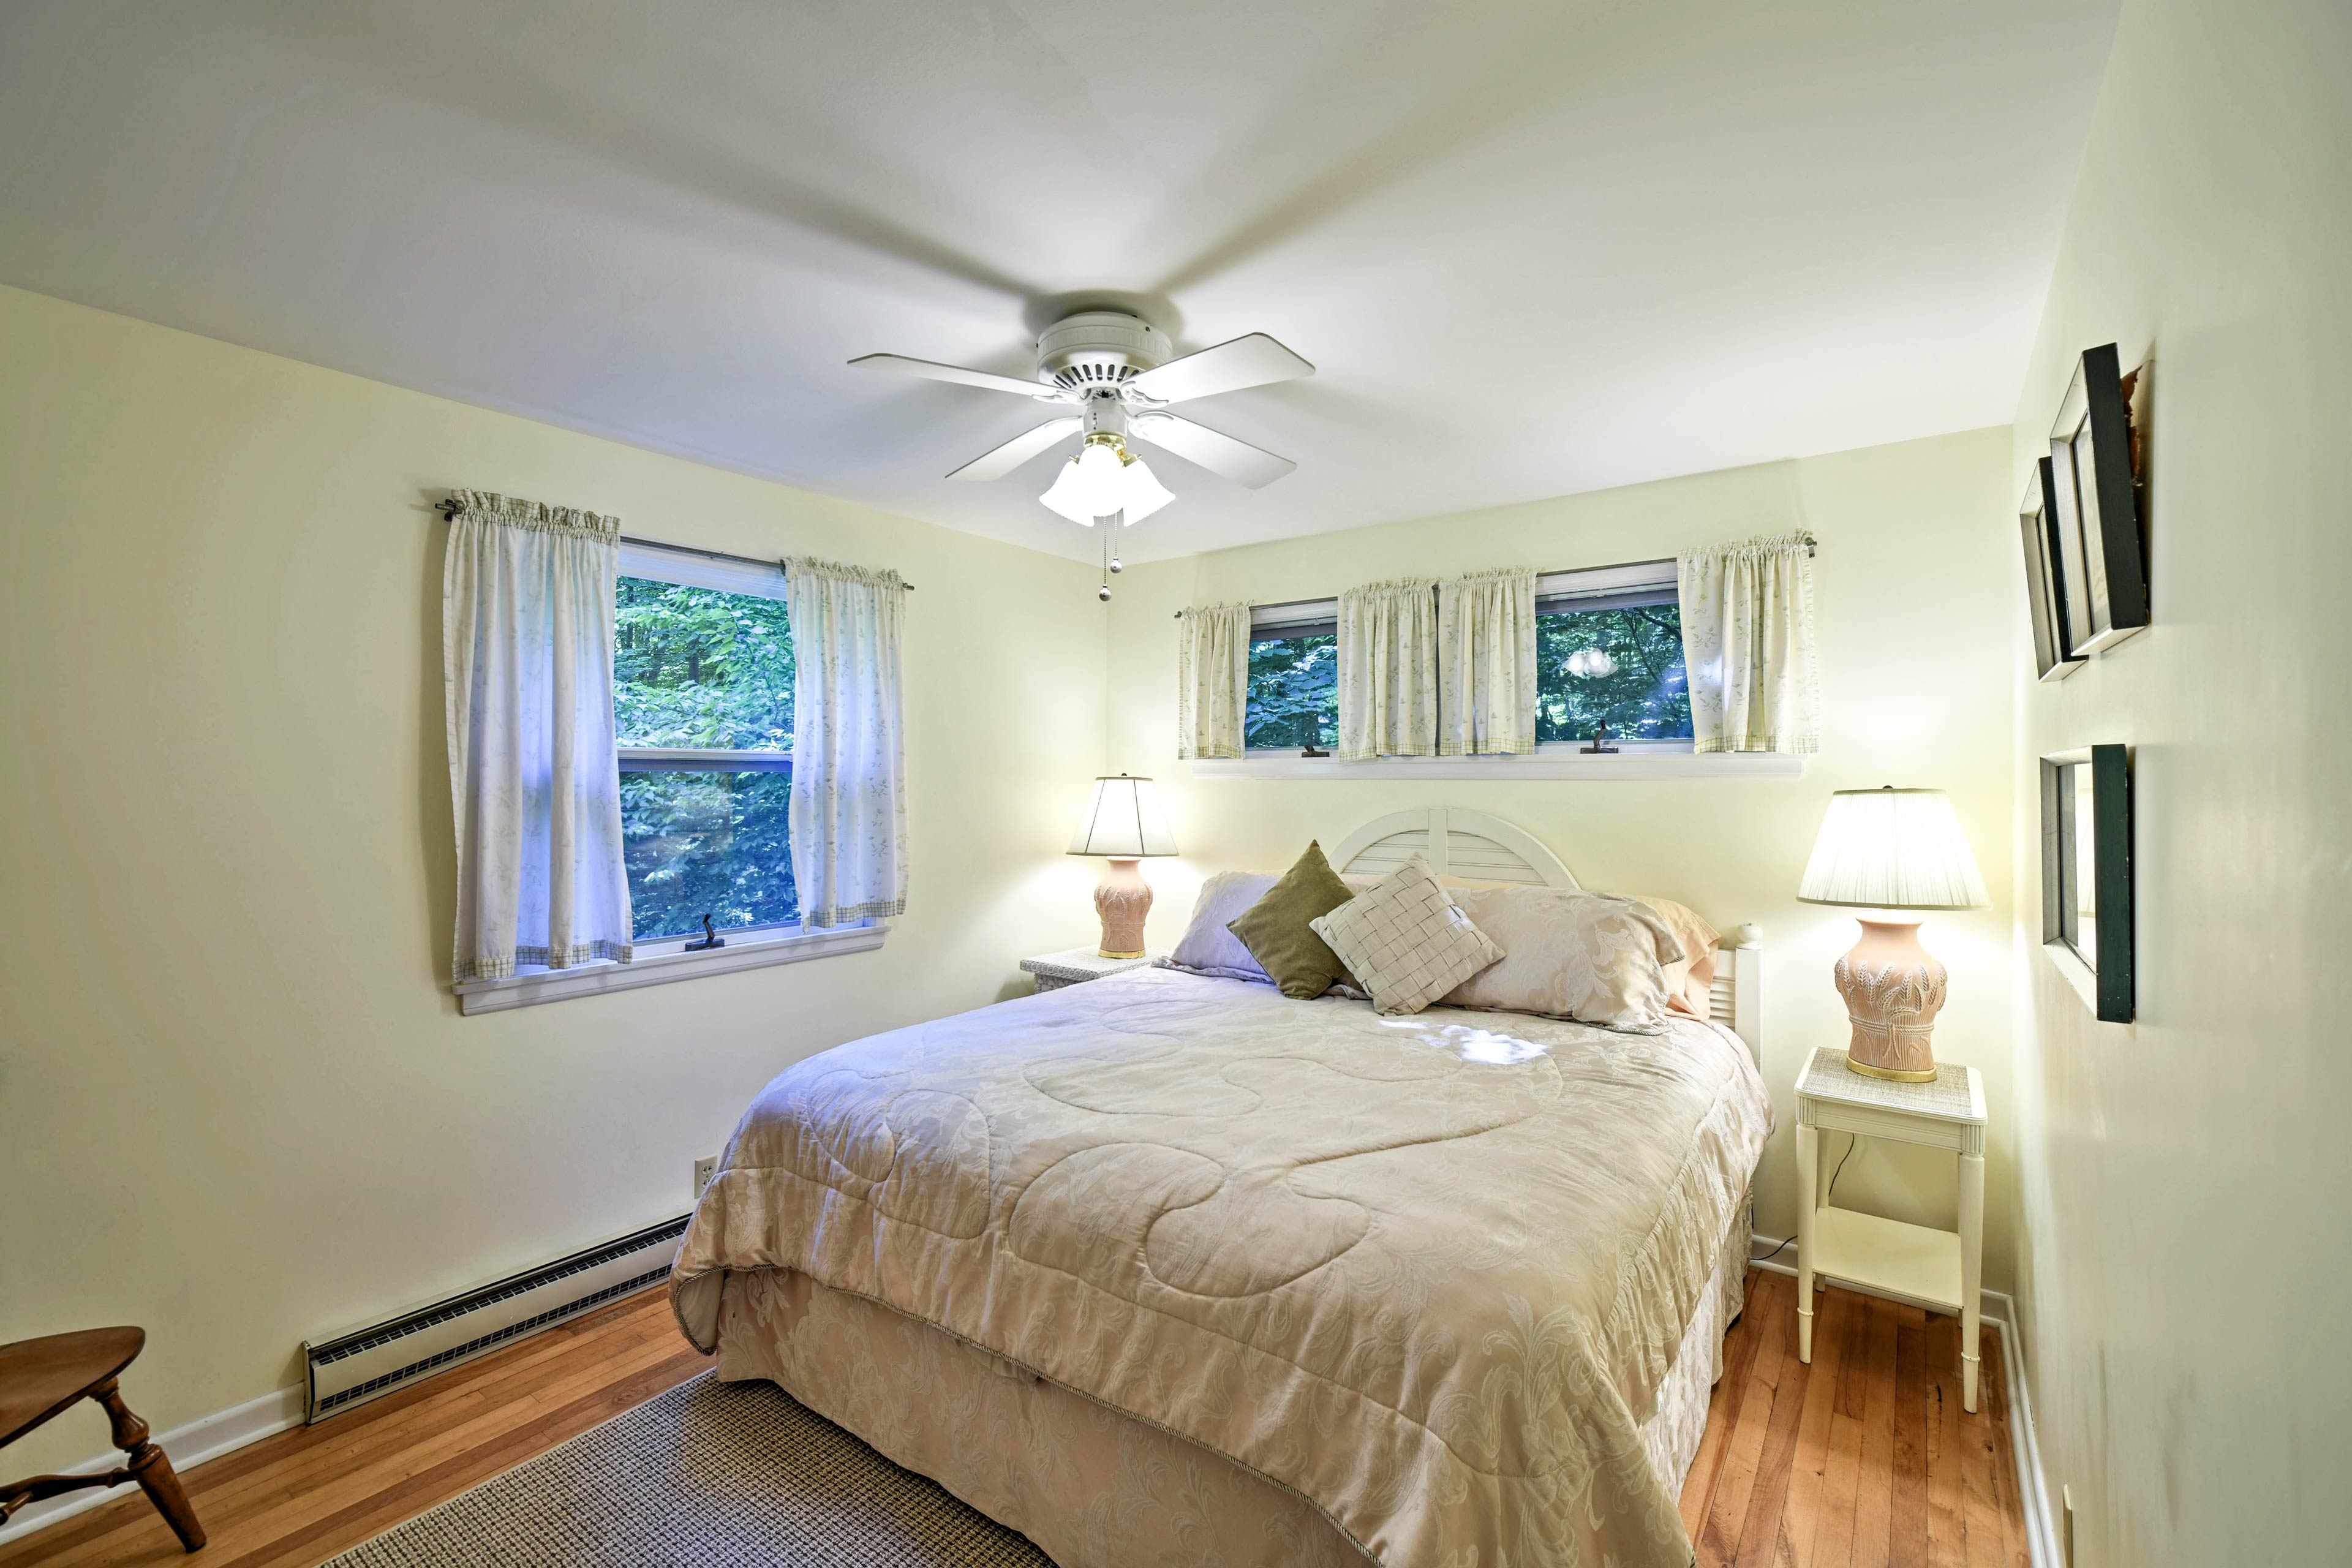 Settle in for the night in one of the 2 bedrooms.